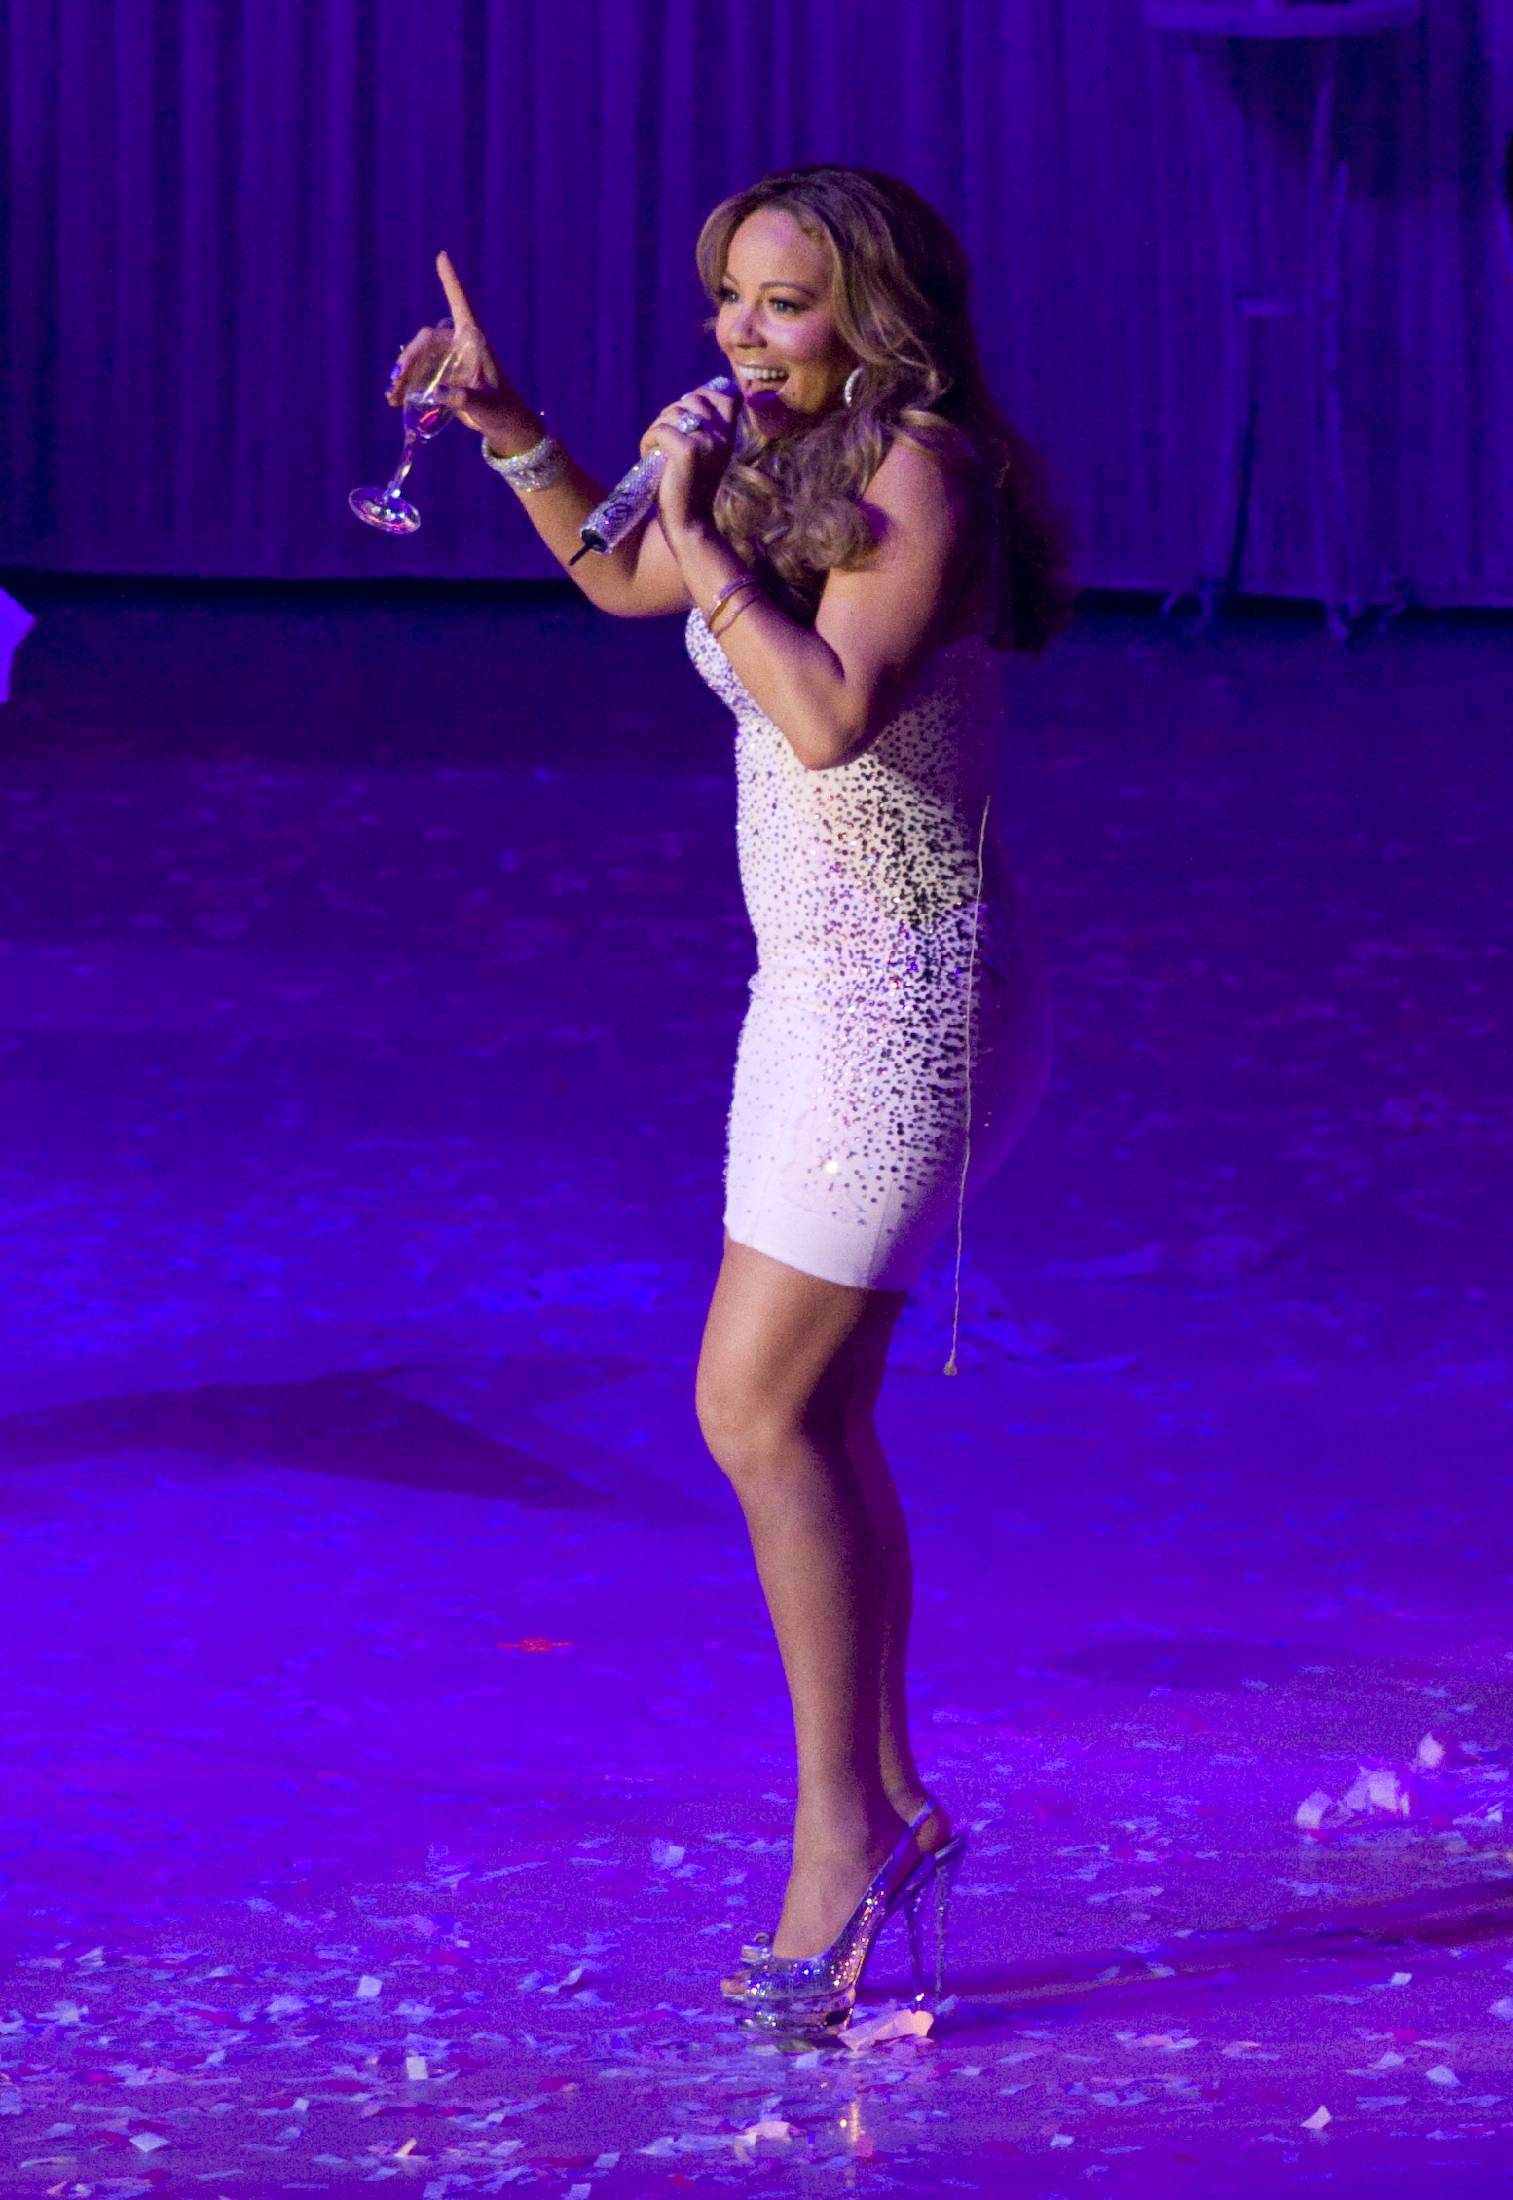 53318_Mariah_Carey_performs_at_Madison_Square_Garden_in_New_York_City-17_122_905lo.jpg